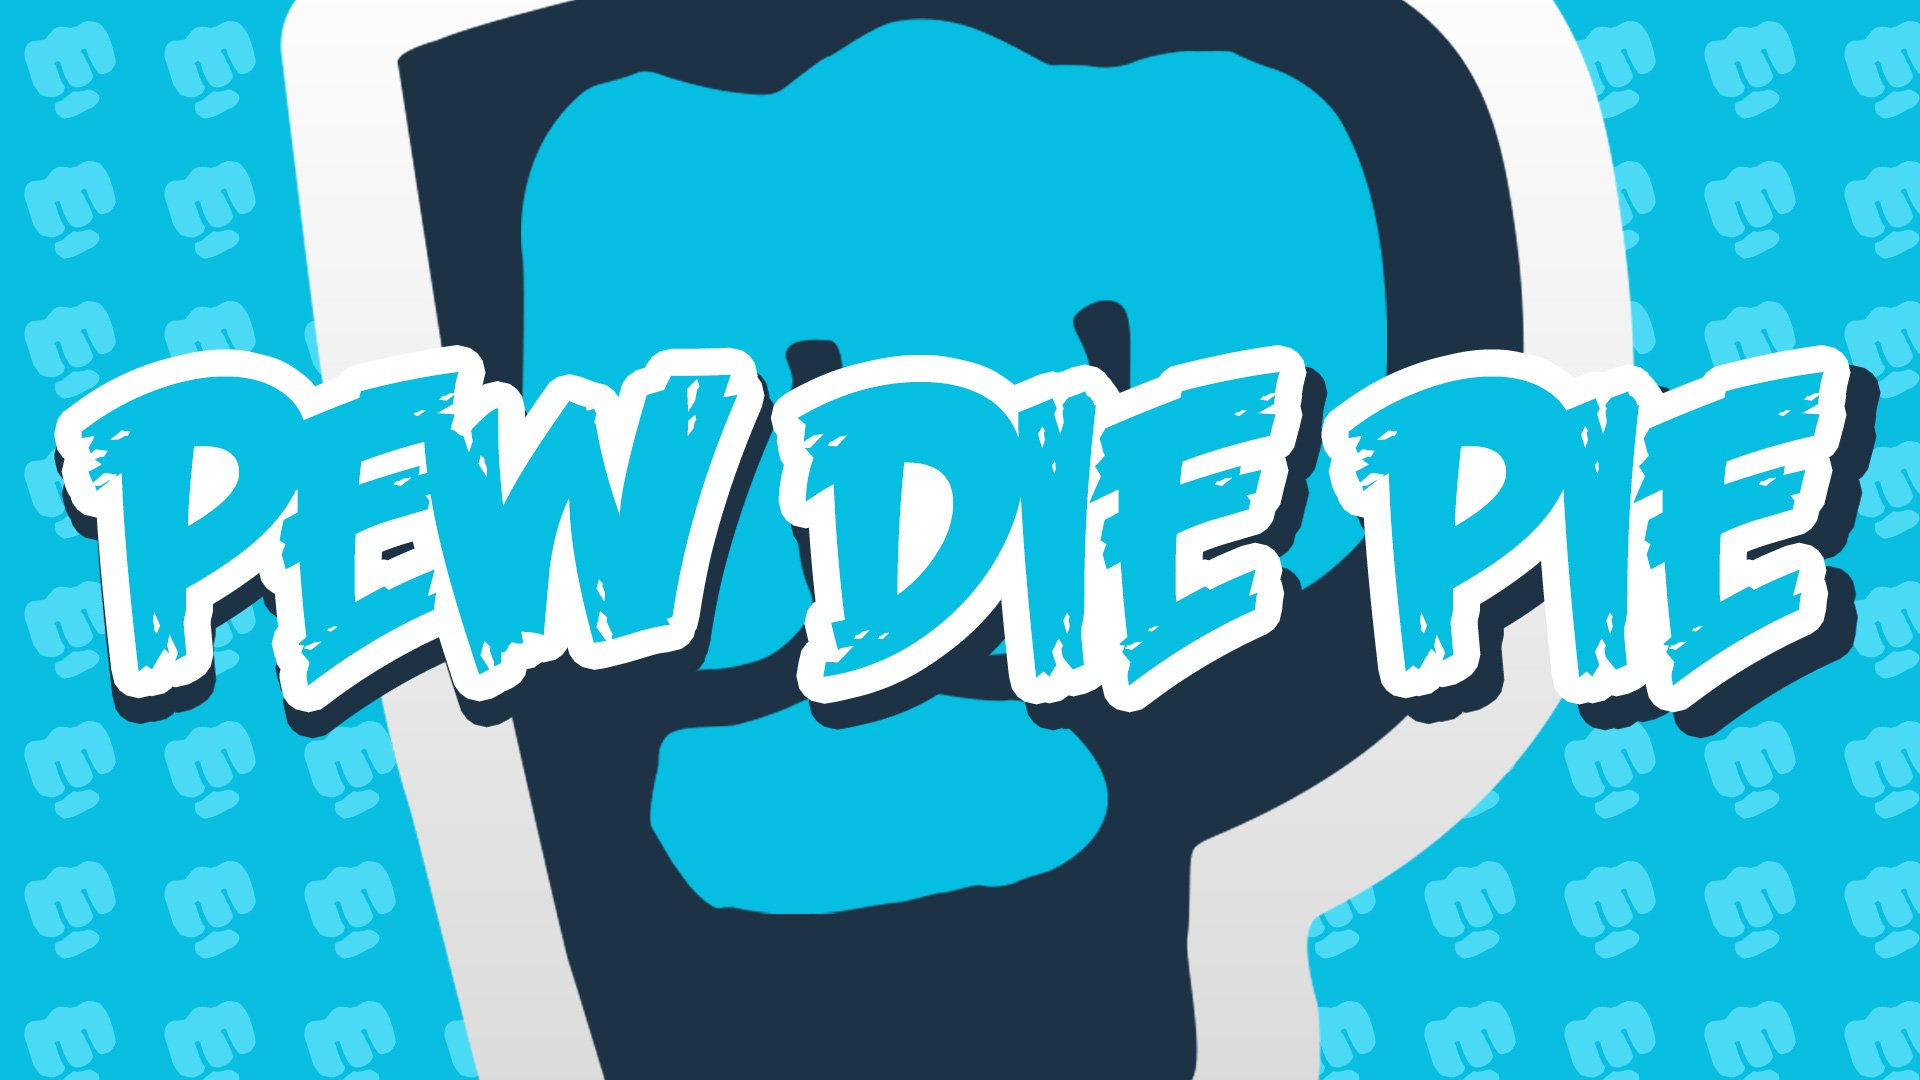 Pew Pie Wallpaper  X